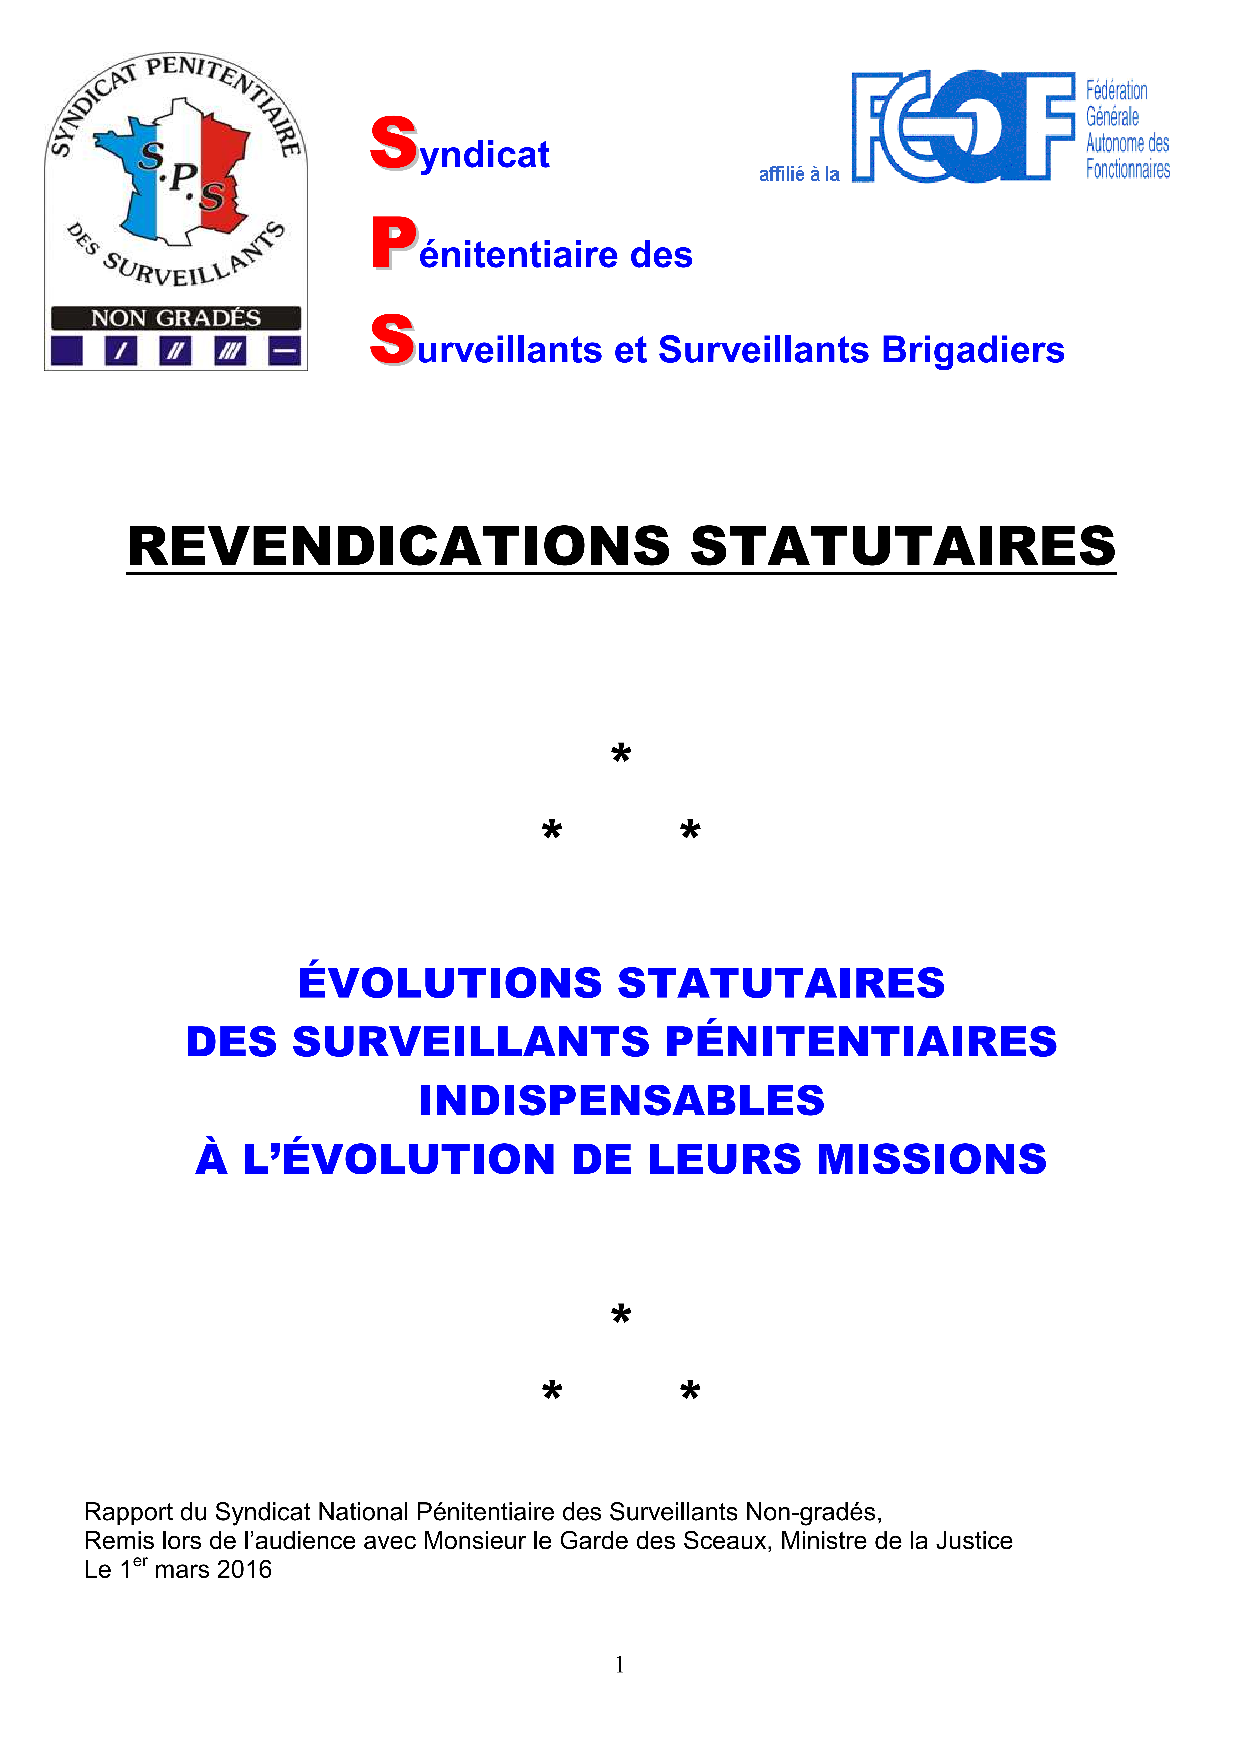 Revendications statutaires01